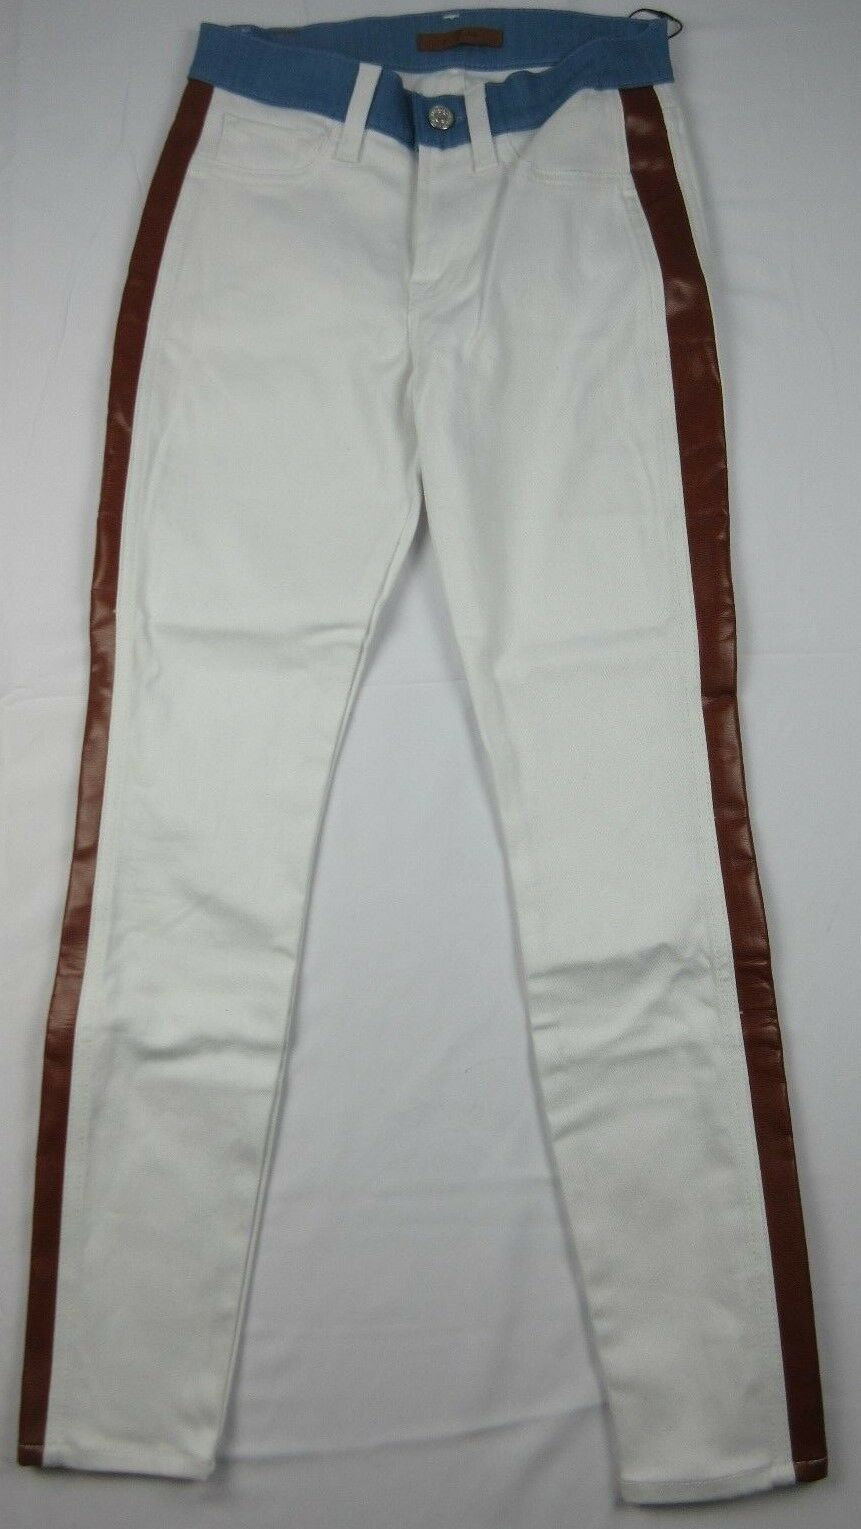 7 FOR ALL MANKIND Sz 23 WHITE STRETCH TUXEDO FAUX LEATHER SKINNY JEANS NWT